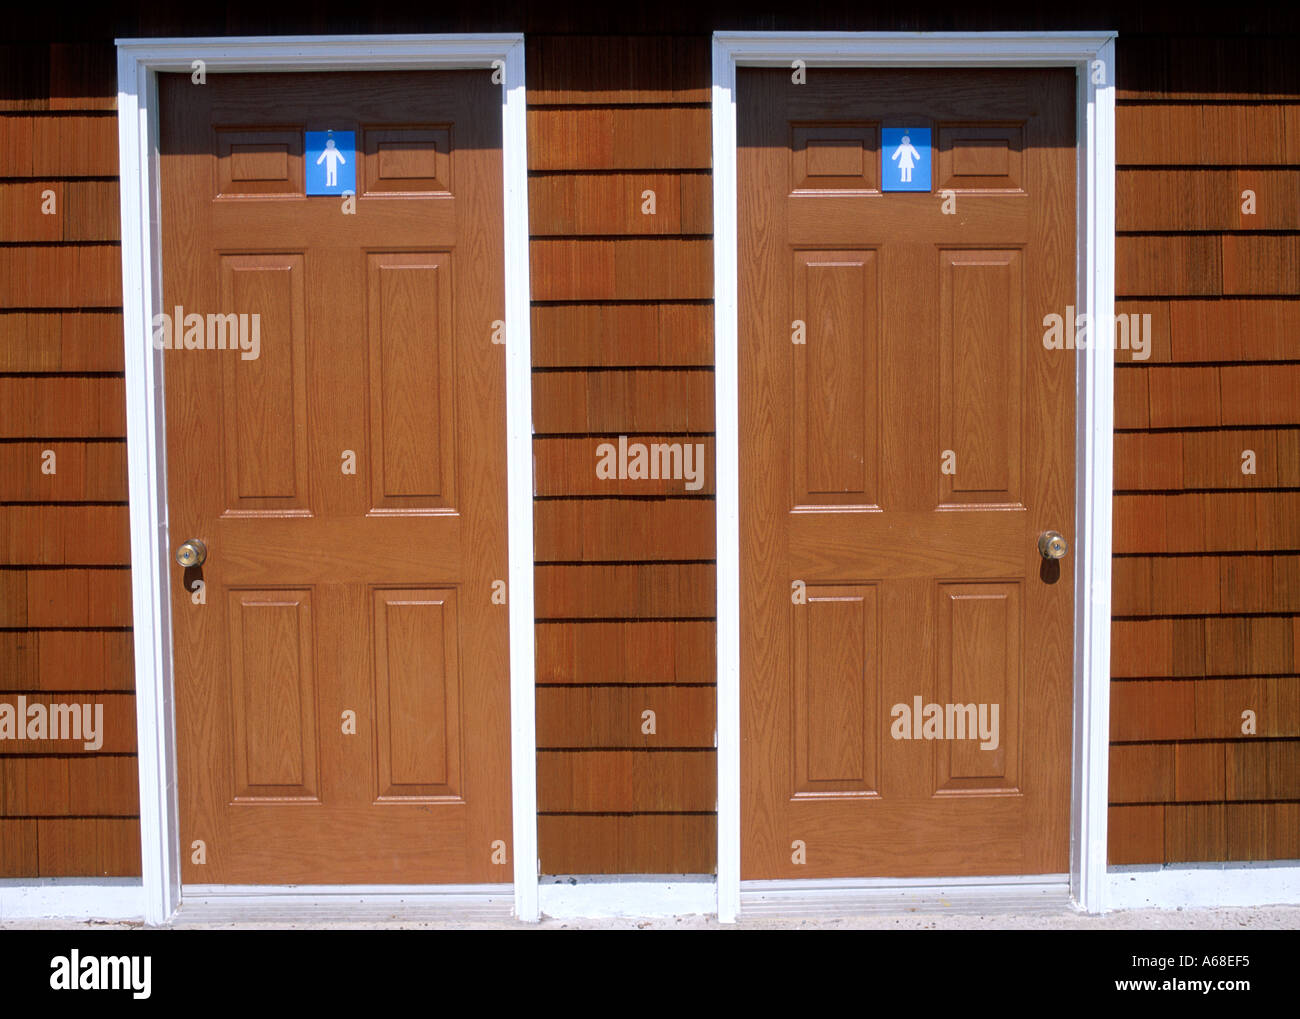 Side by side mens and womens restrooms - Stock Image